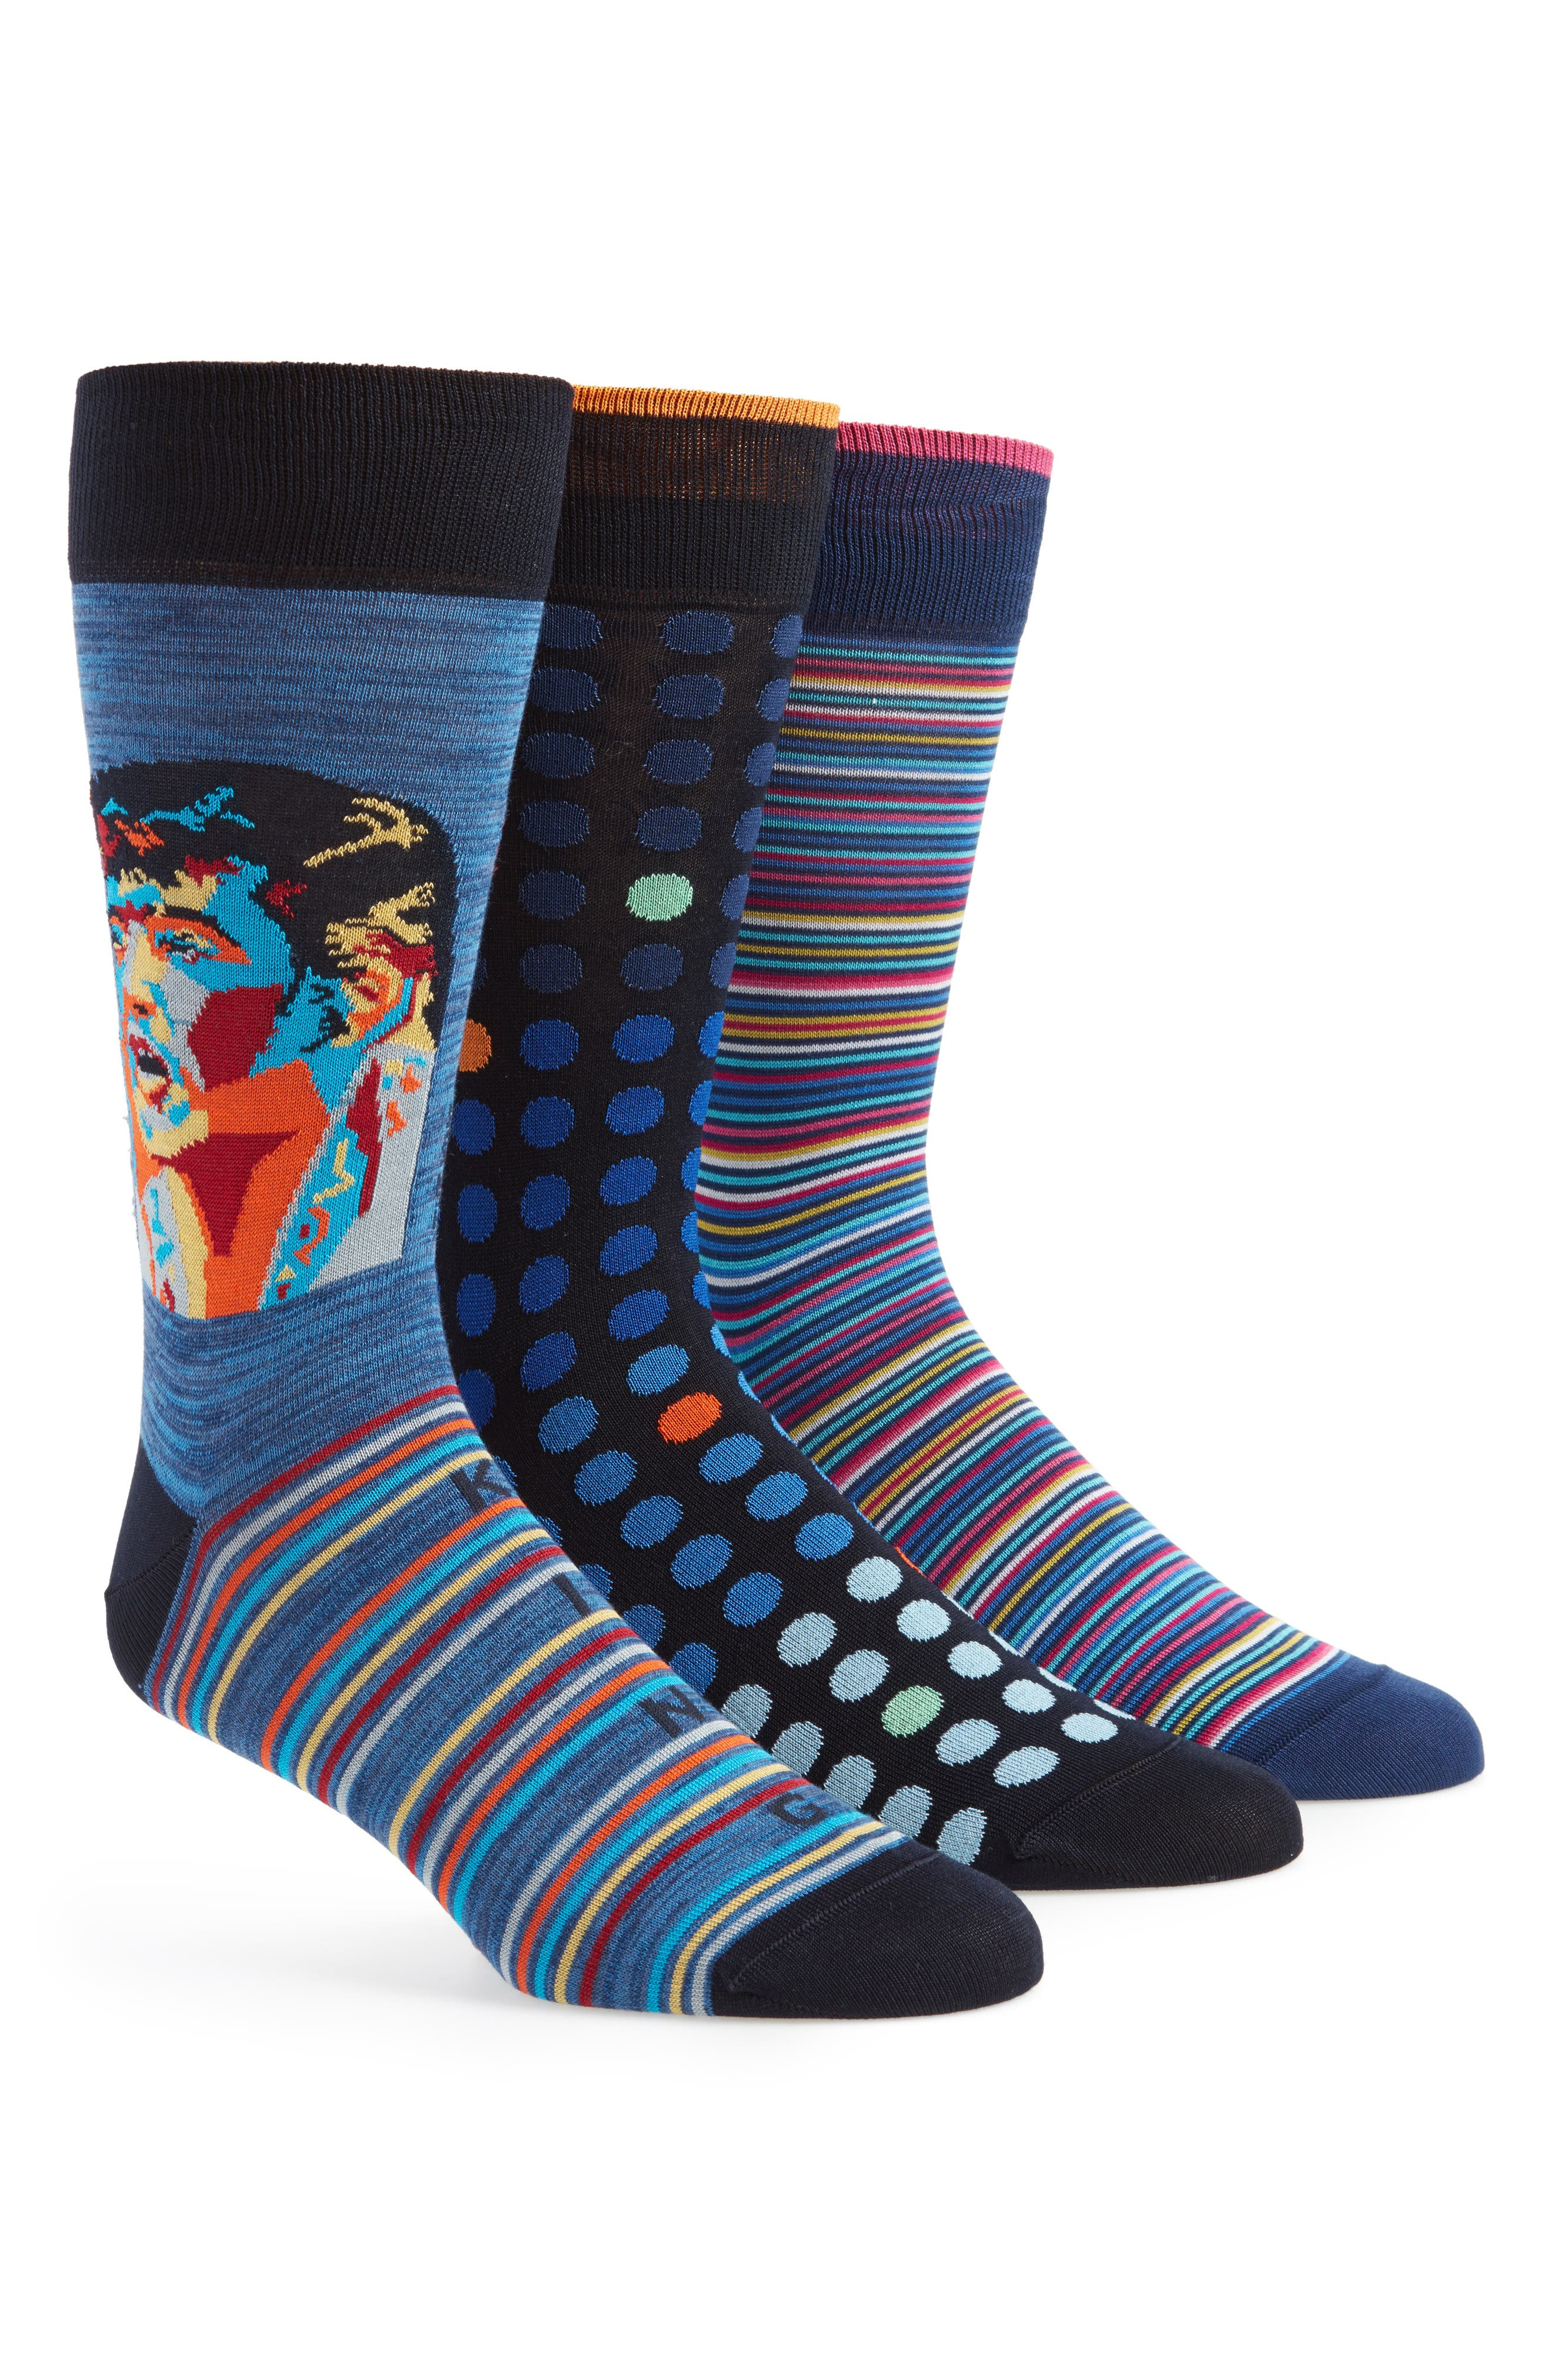 Assorted 3-Pack Mercerized Cotton Blend Sock Gift Set,                             Main thumbnail 1, color,                             Midnight